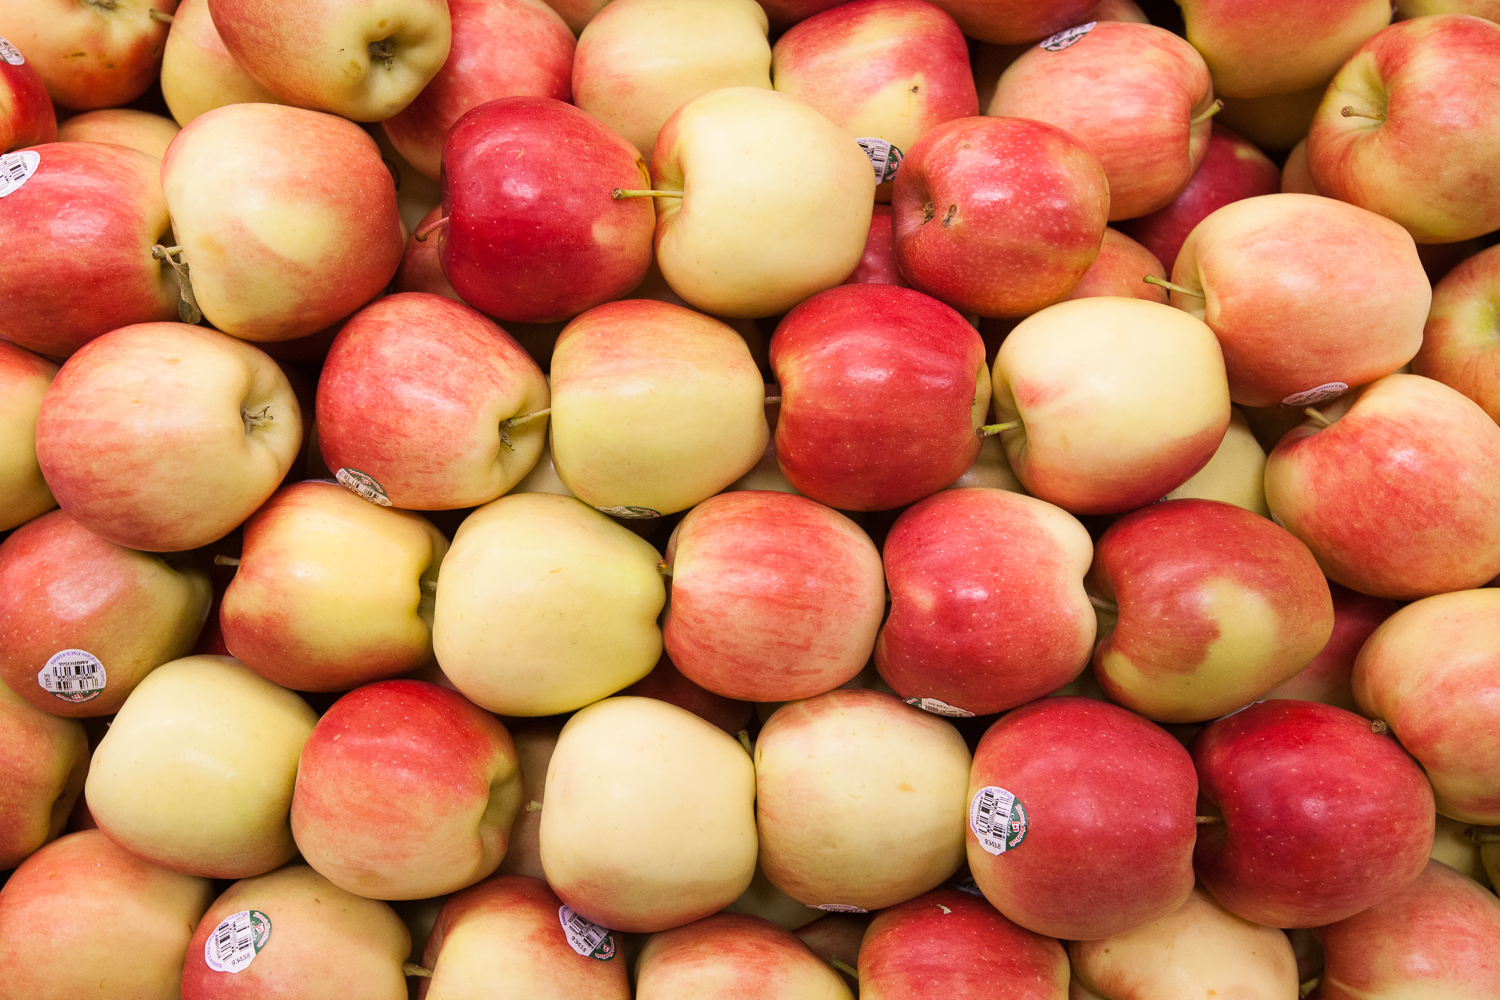 Organic Red Apples from Mana Foods Produce Department